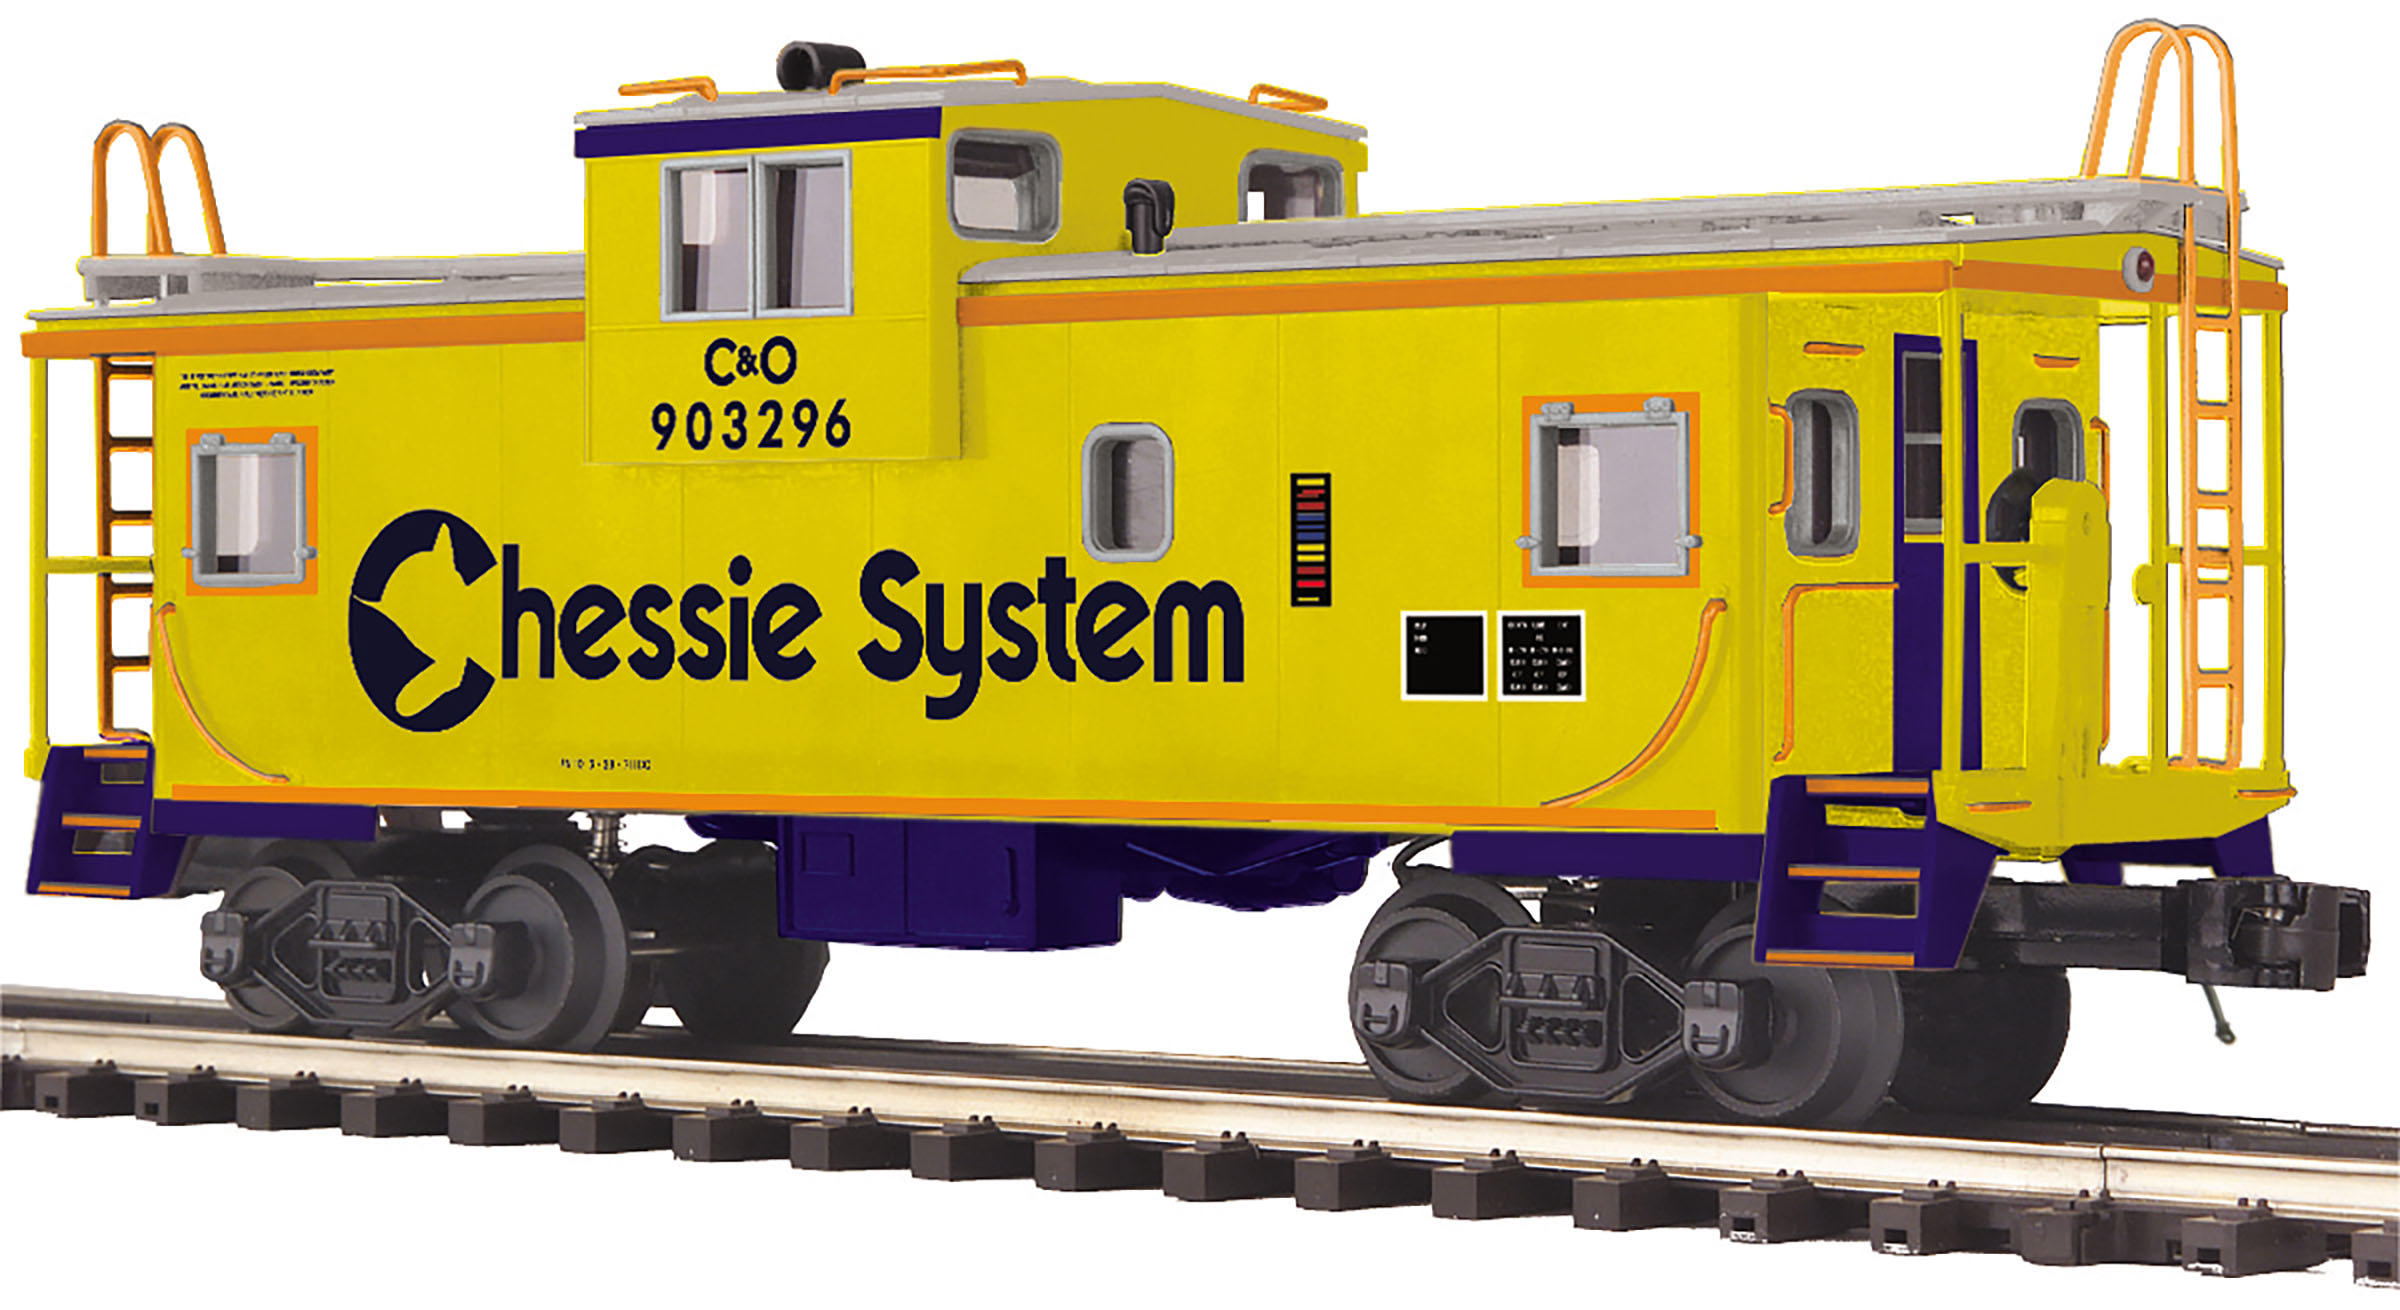 MTH 2091658 O Extended-Vision Caboose 3-Rail Ready to Run Premier Chessie System 903296 507-2091658